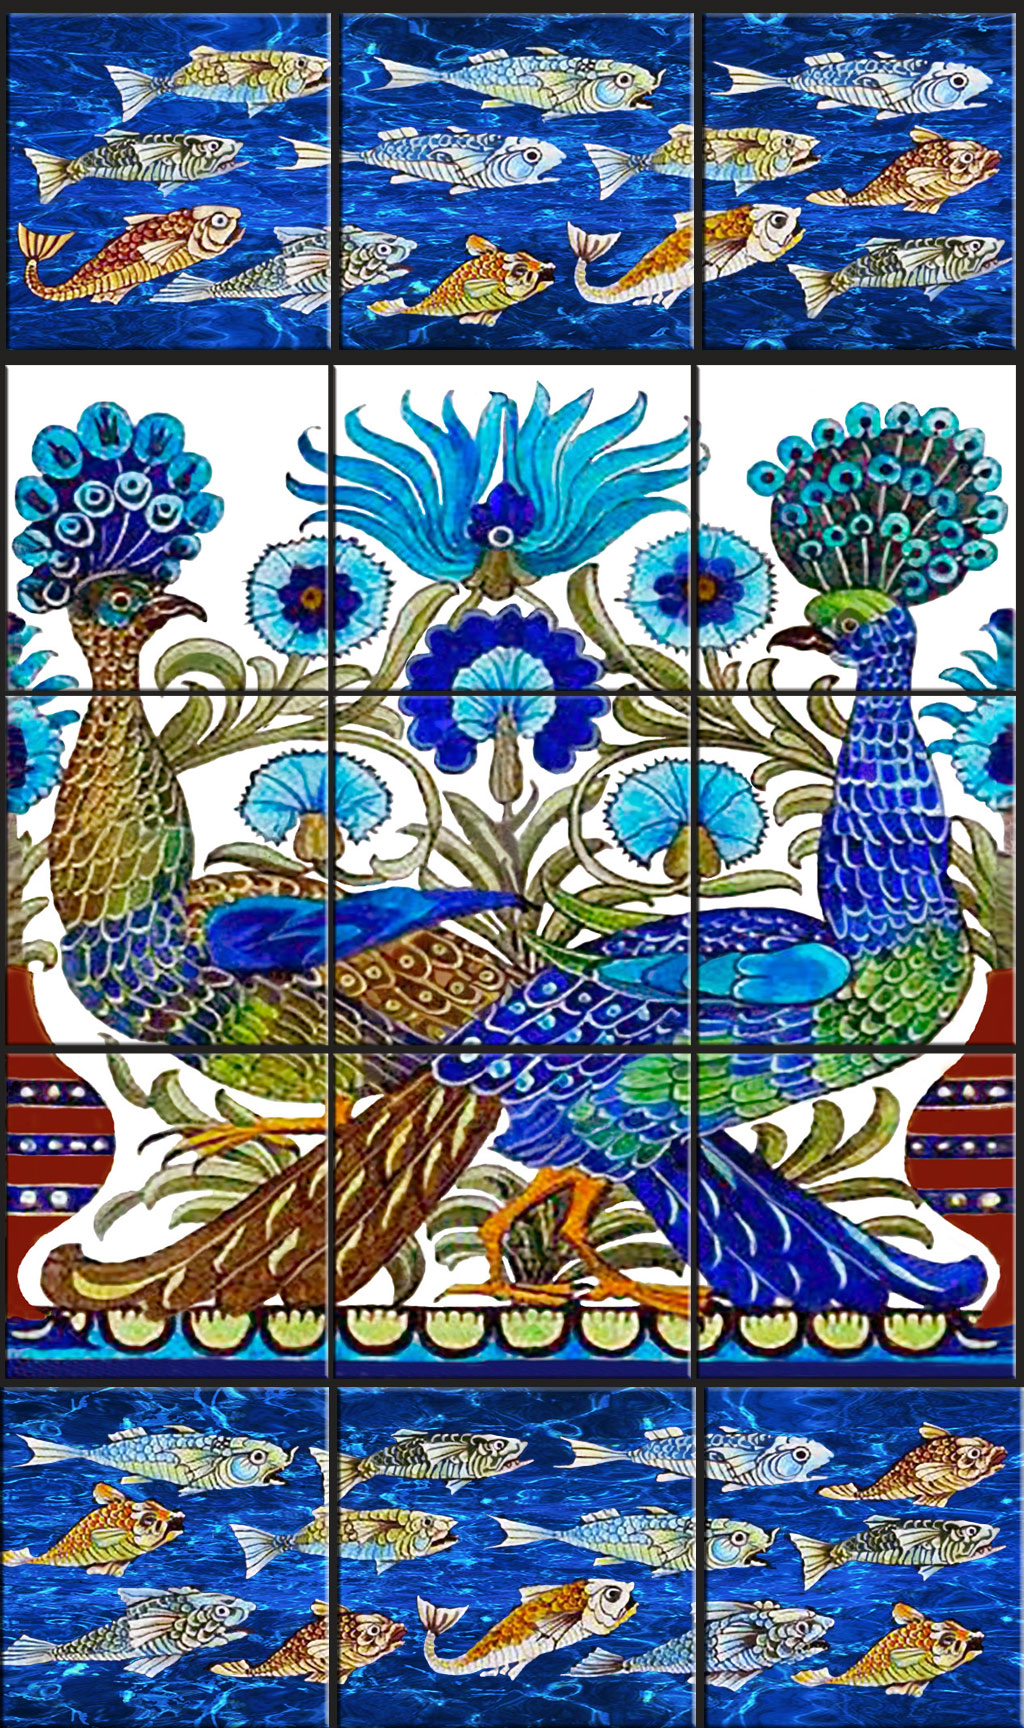 Crosstailed peacocks with Fish Borders